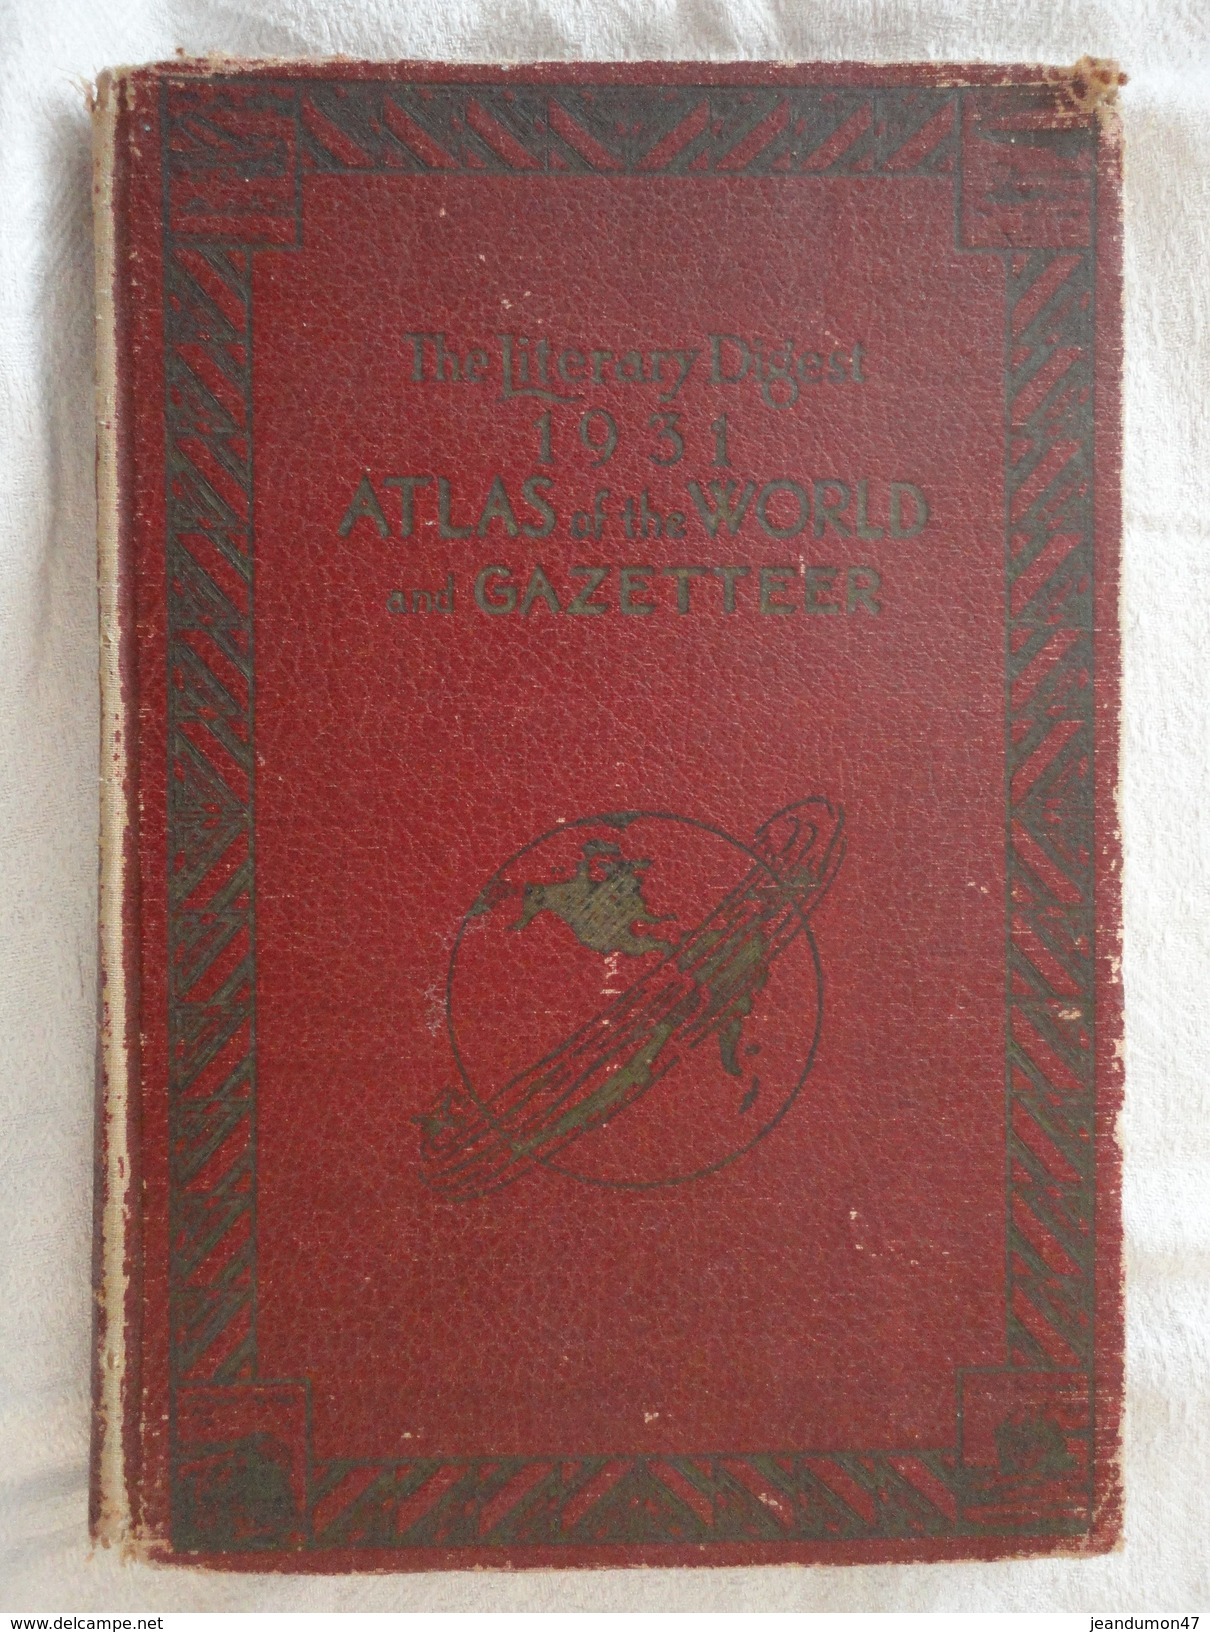 THE LITERARY DIGEST 1931. ATLAS OF THE WORLD AND GAZETTEER. 256 PAGES. RAND MçNALLY & COMPANY - CHICAGO - Livres, BD, Revues